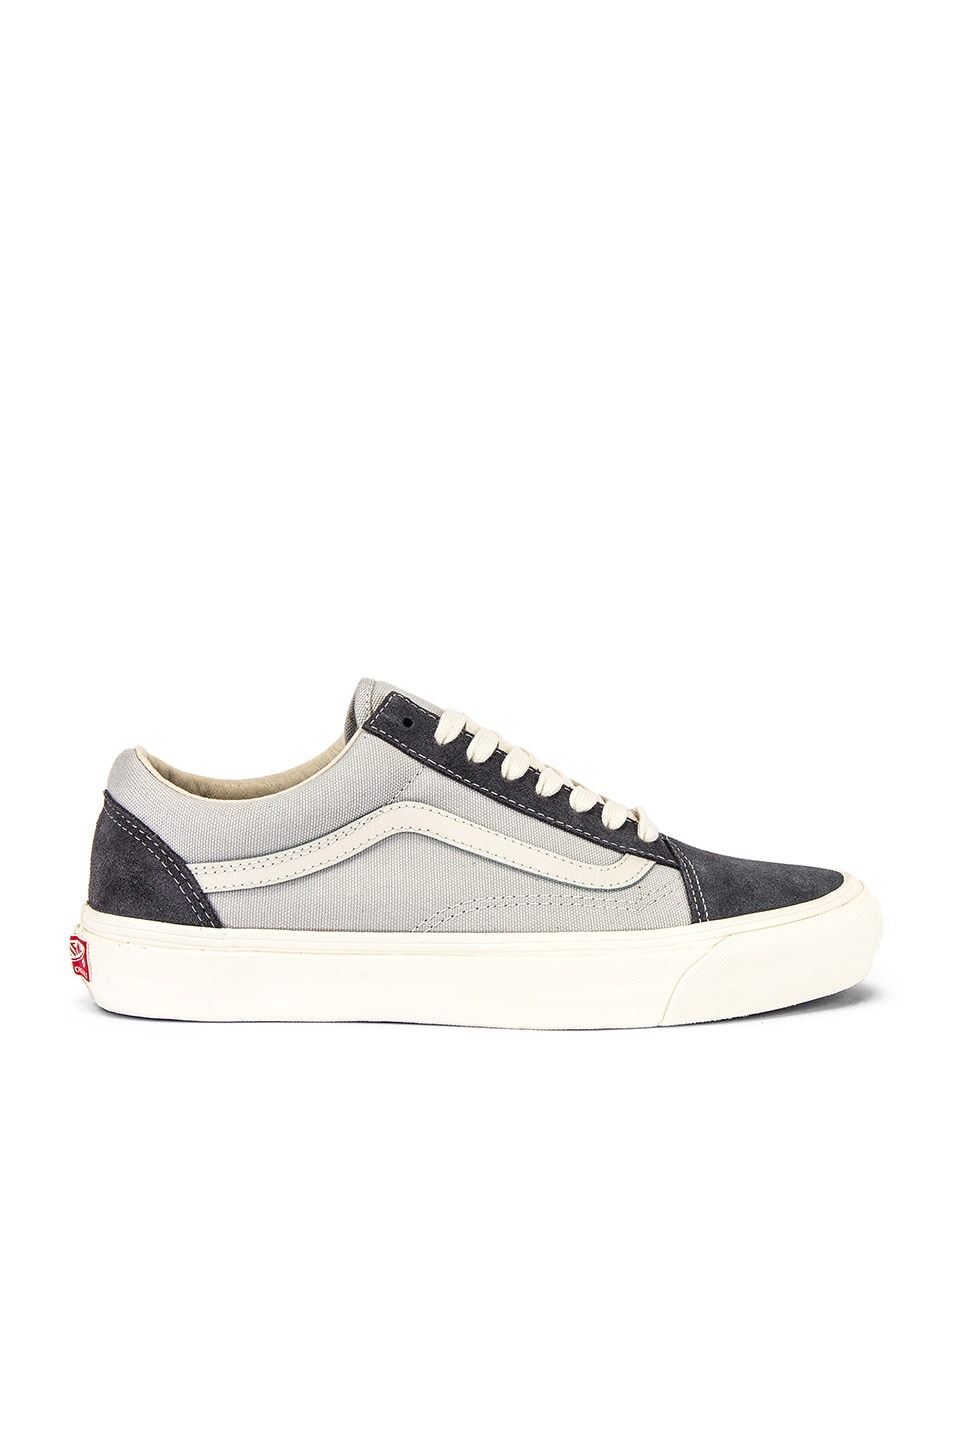 Image 1 of Vans Vault OG Style Old Skool LX in Pearl Gray & Multi